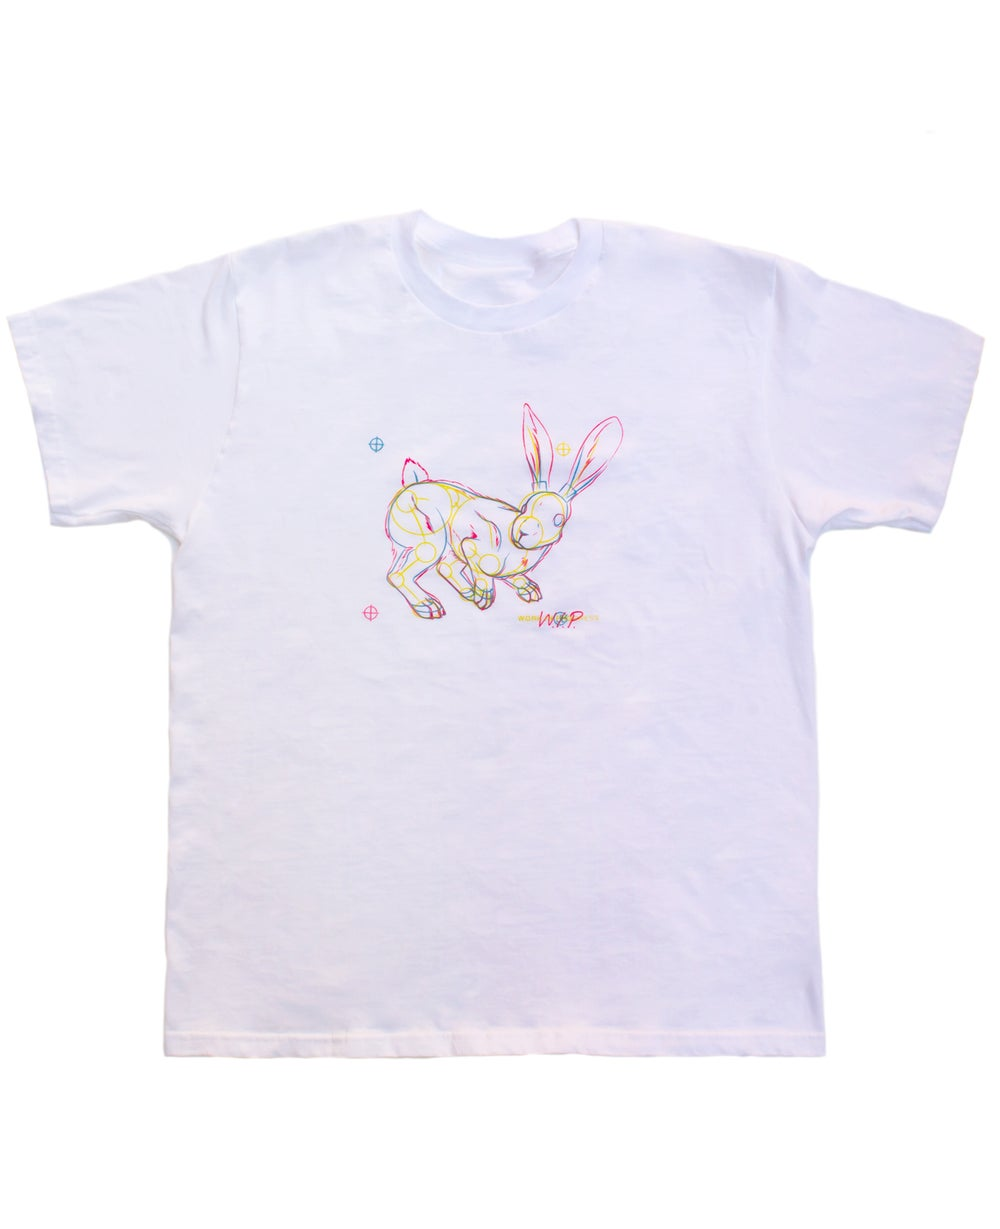 Image of 'Sketch' T-Shirt